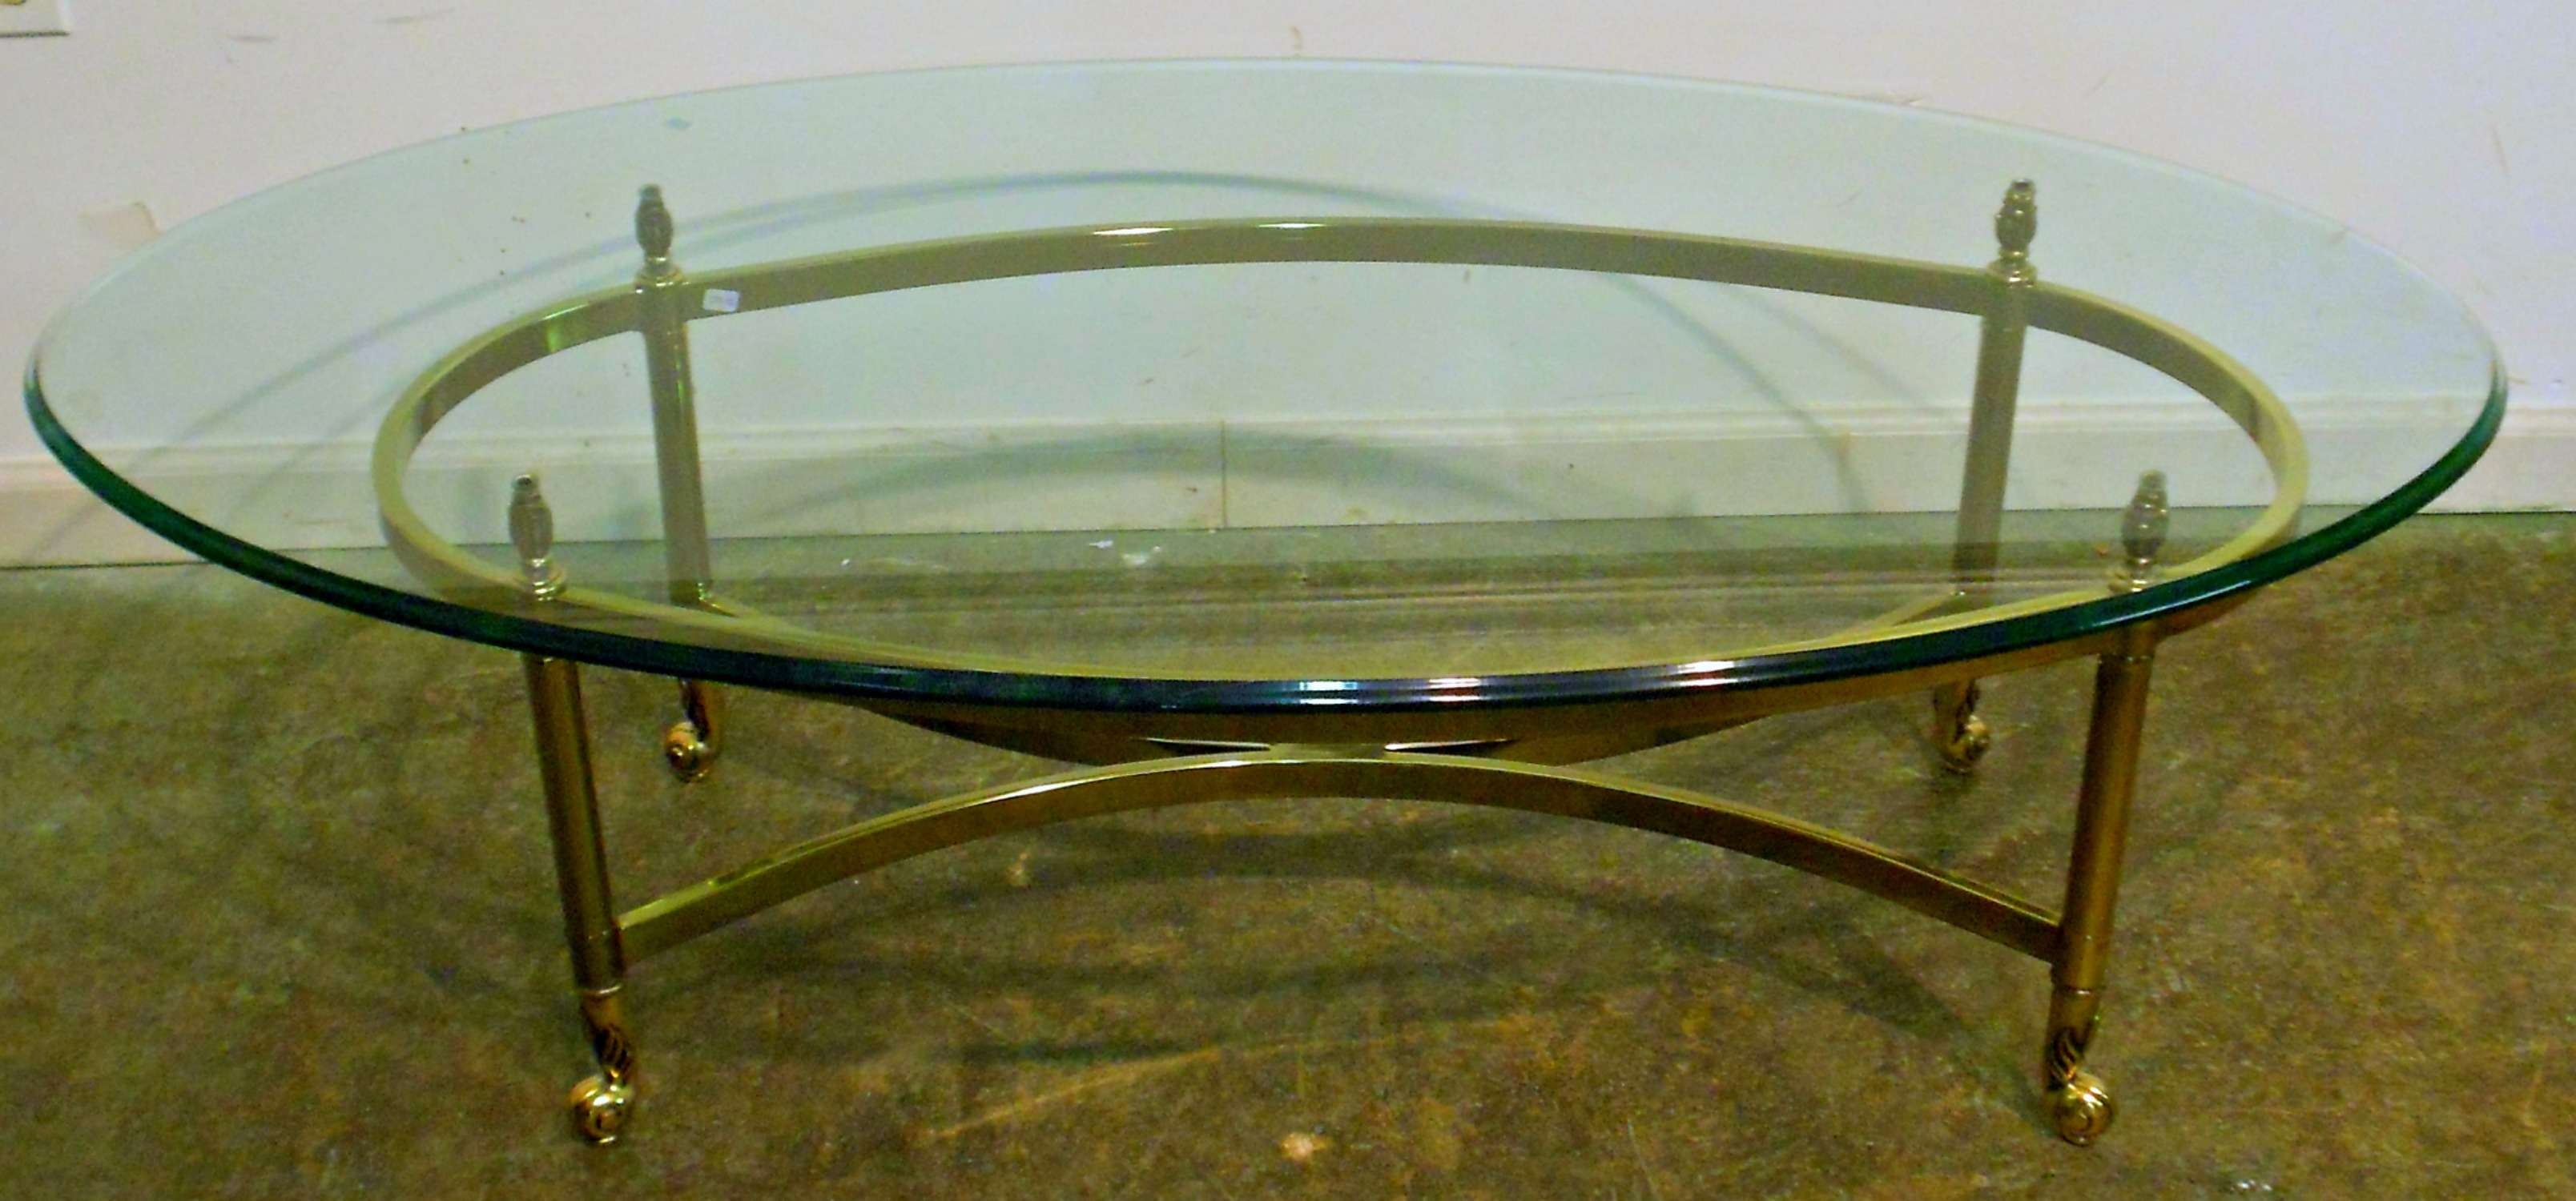 Most Popular Spiral Glass Coffee Table In Decorations : Unique Coffee Table Contemporary Metal Glass Awesome (View 11 of 20)